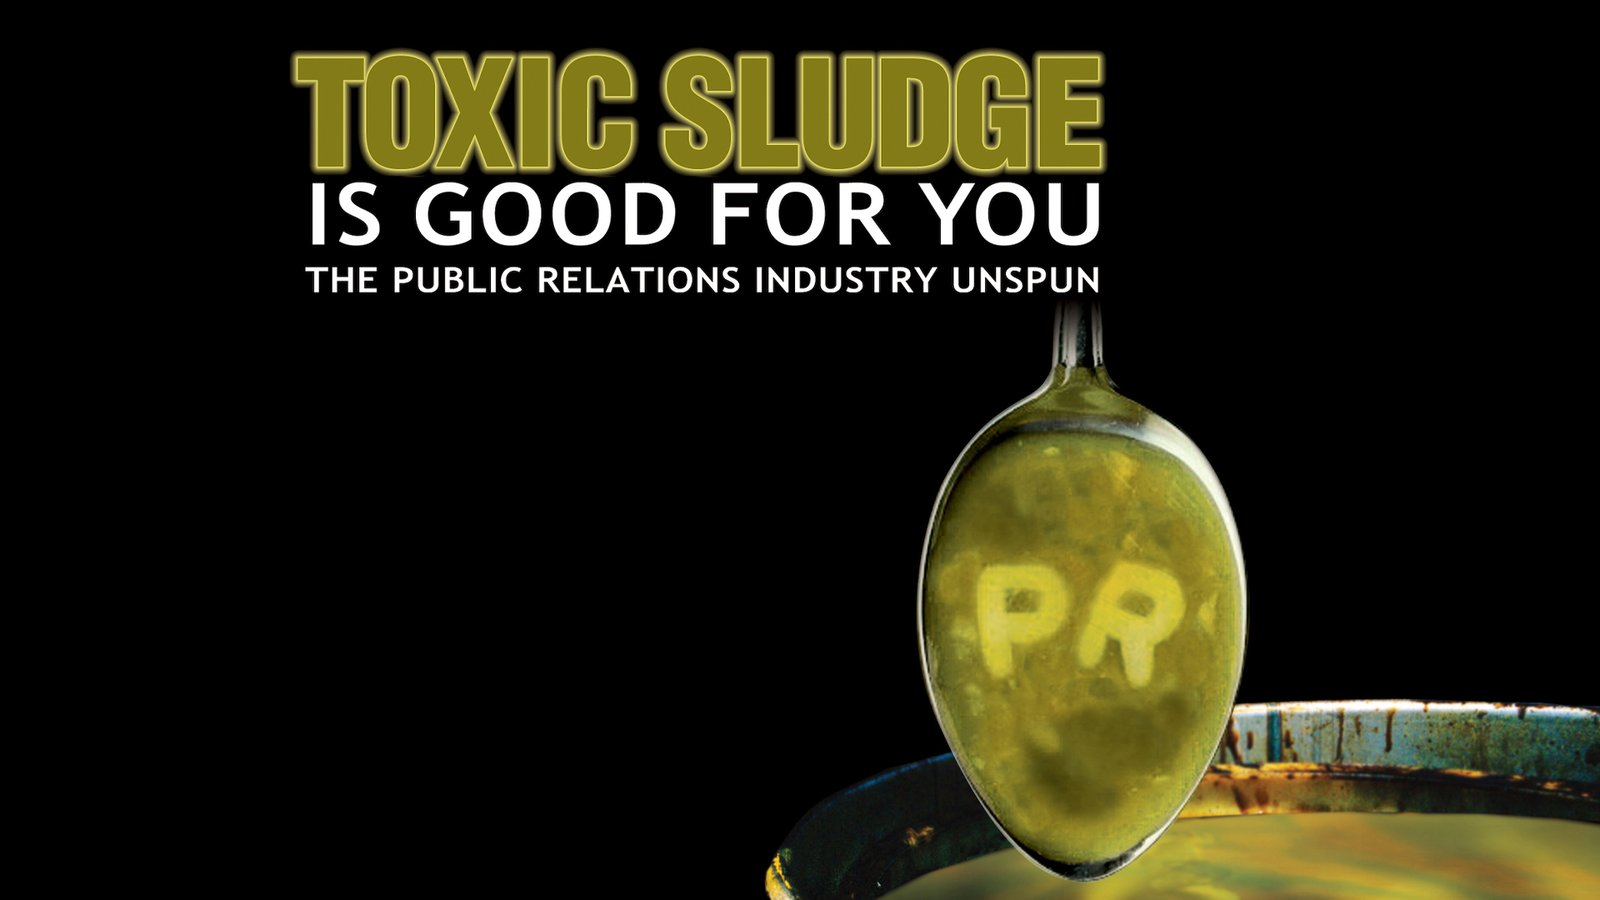 Toxic Sludge is Good for You - The Public Relations Industry Unspun